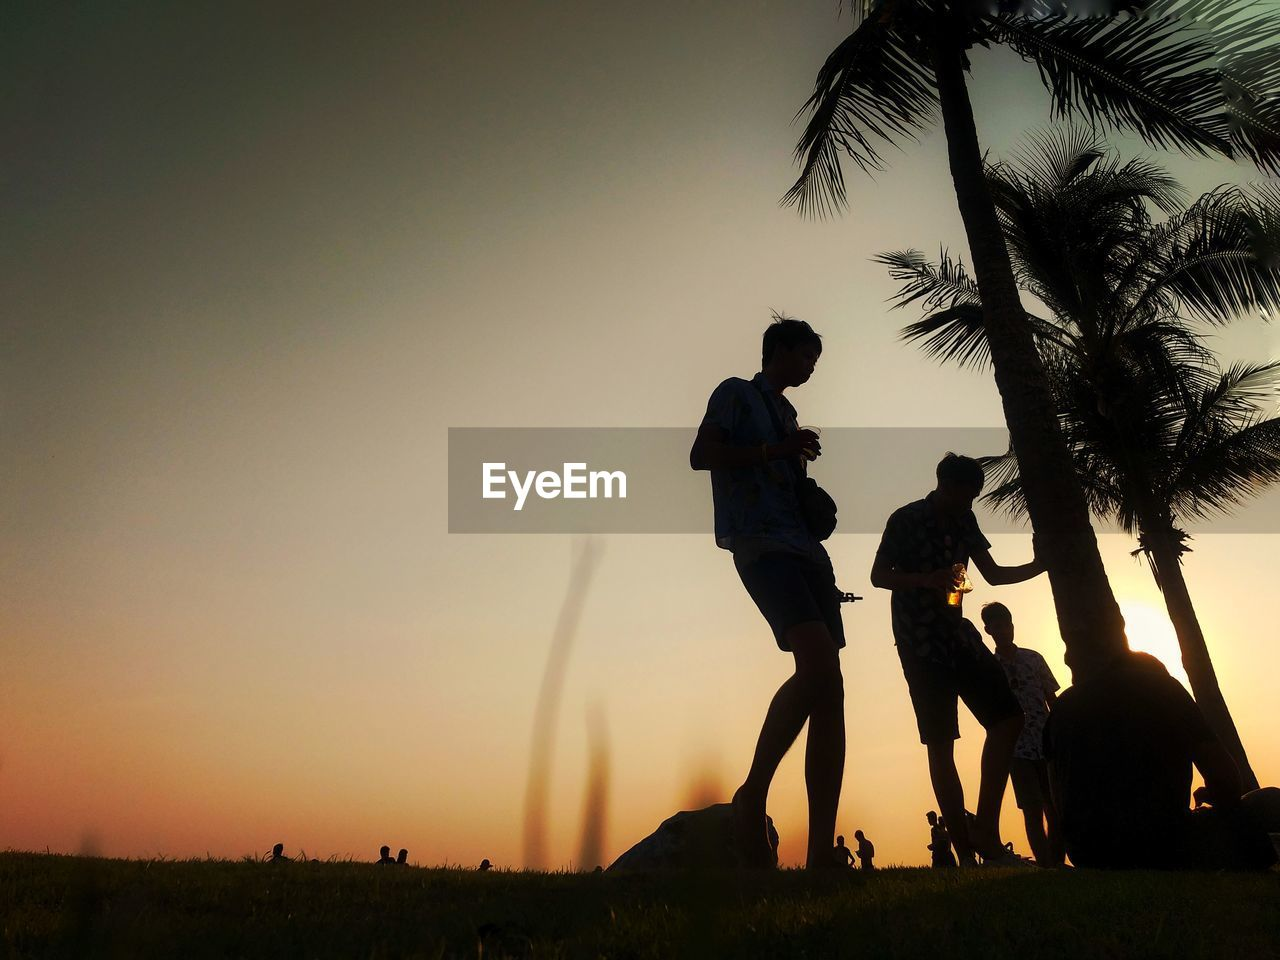 sky, sunset, silhouette, group of people, men, tree, tropical climate, palm tree, nature, plant, real people, people, leisure activity, lifestyles, orange color, togetherness, land, child, clear sky, outdoors